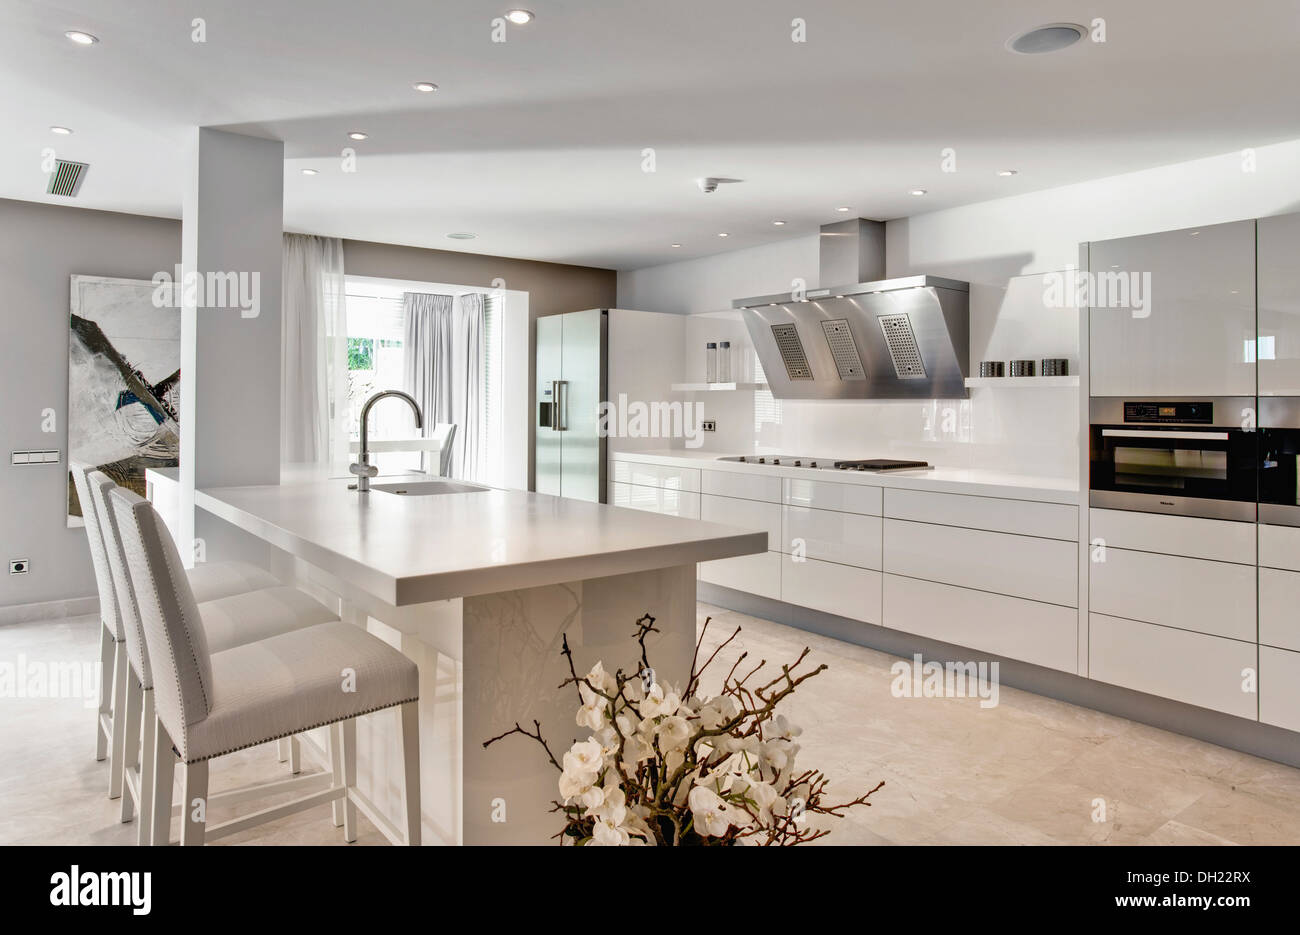 White Breakfast Bar Stools At White Breakfast Bar With Built In Hob In Modern White